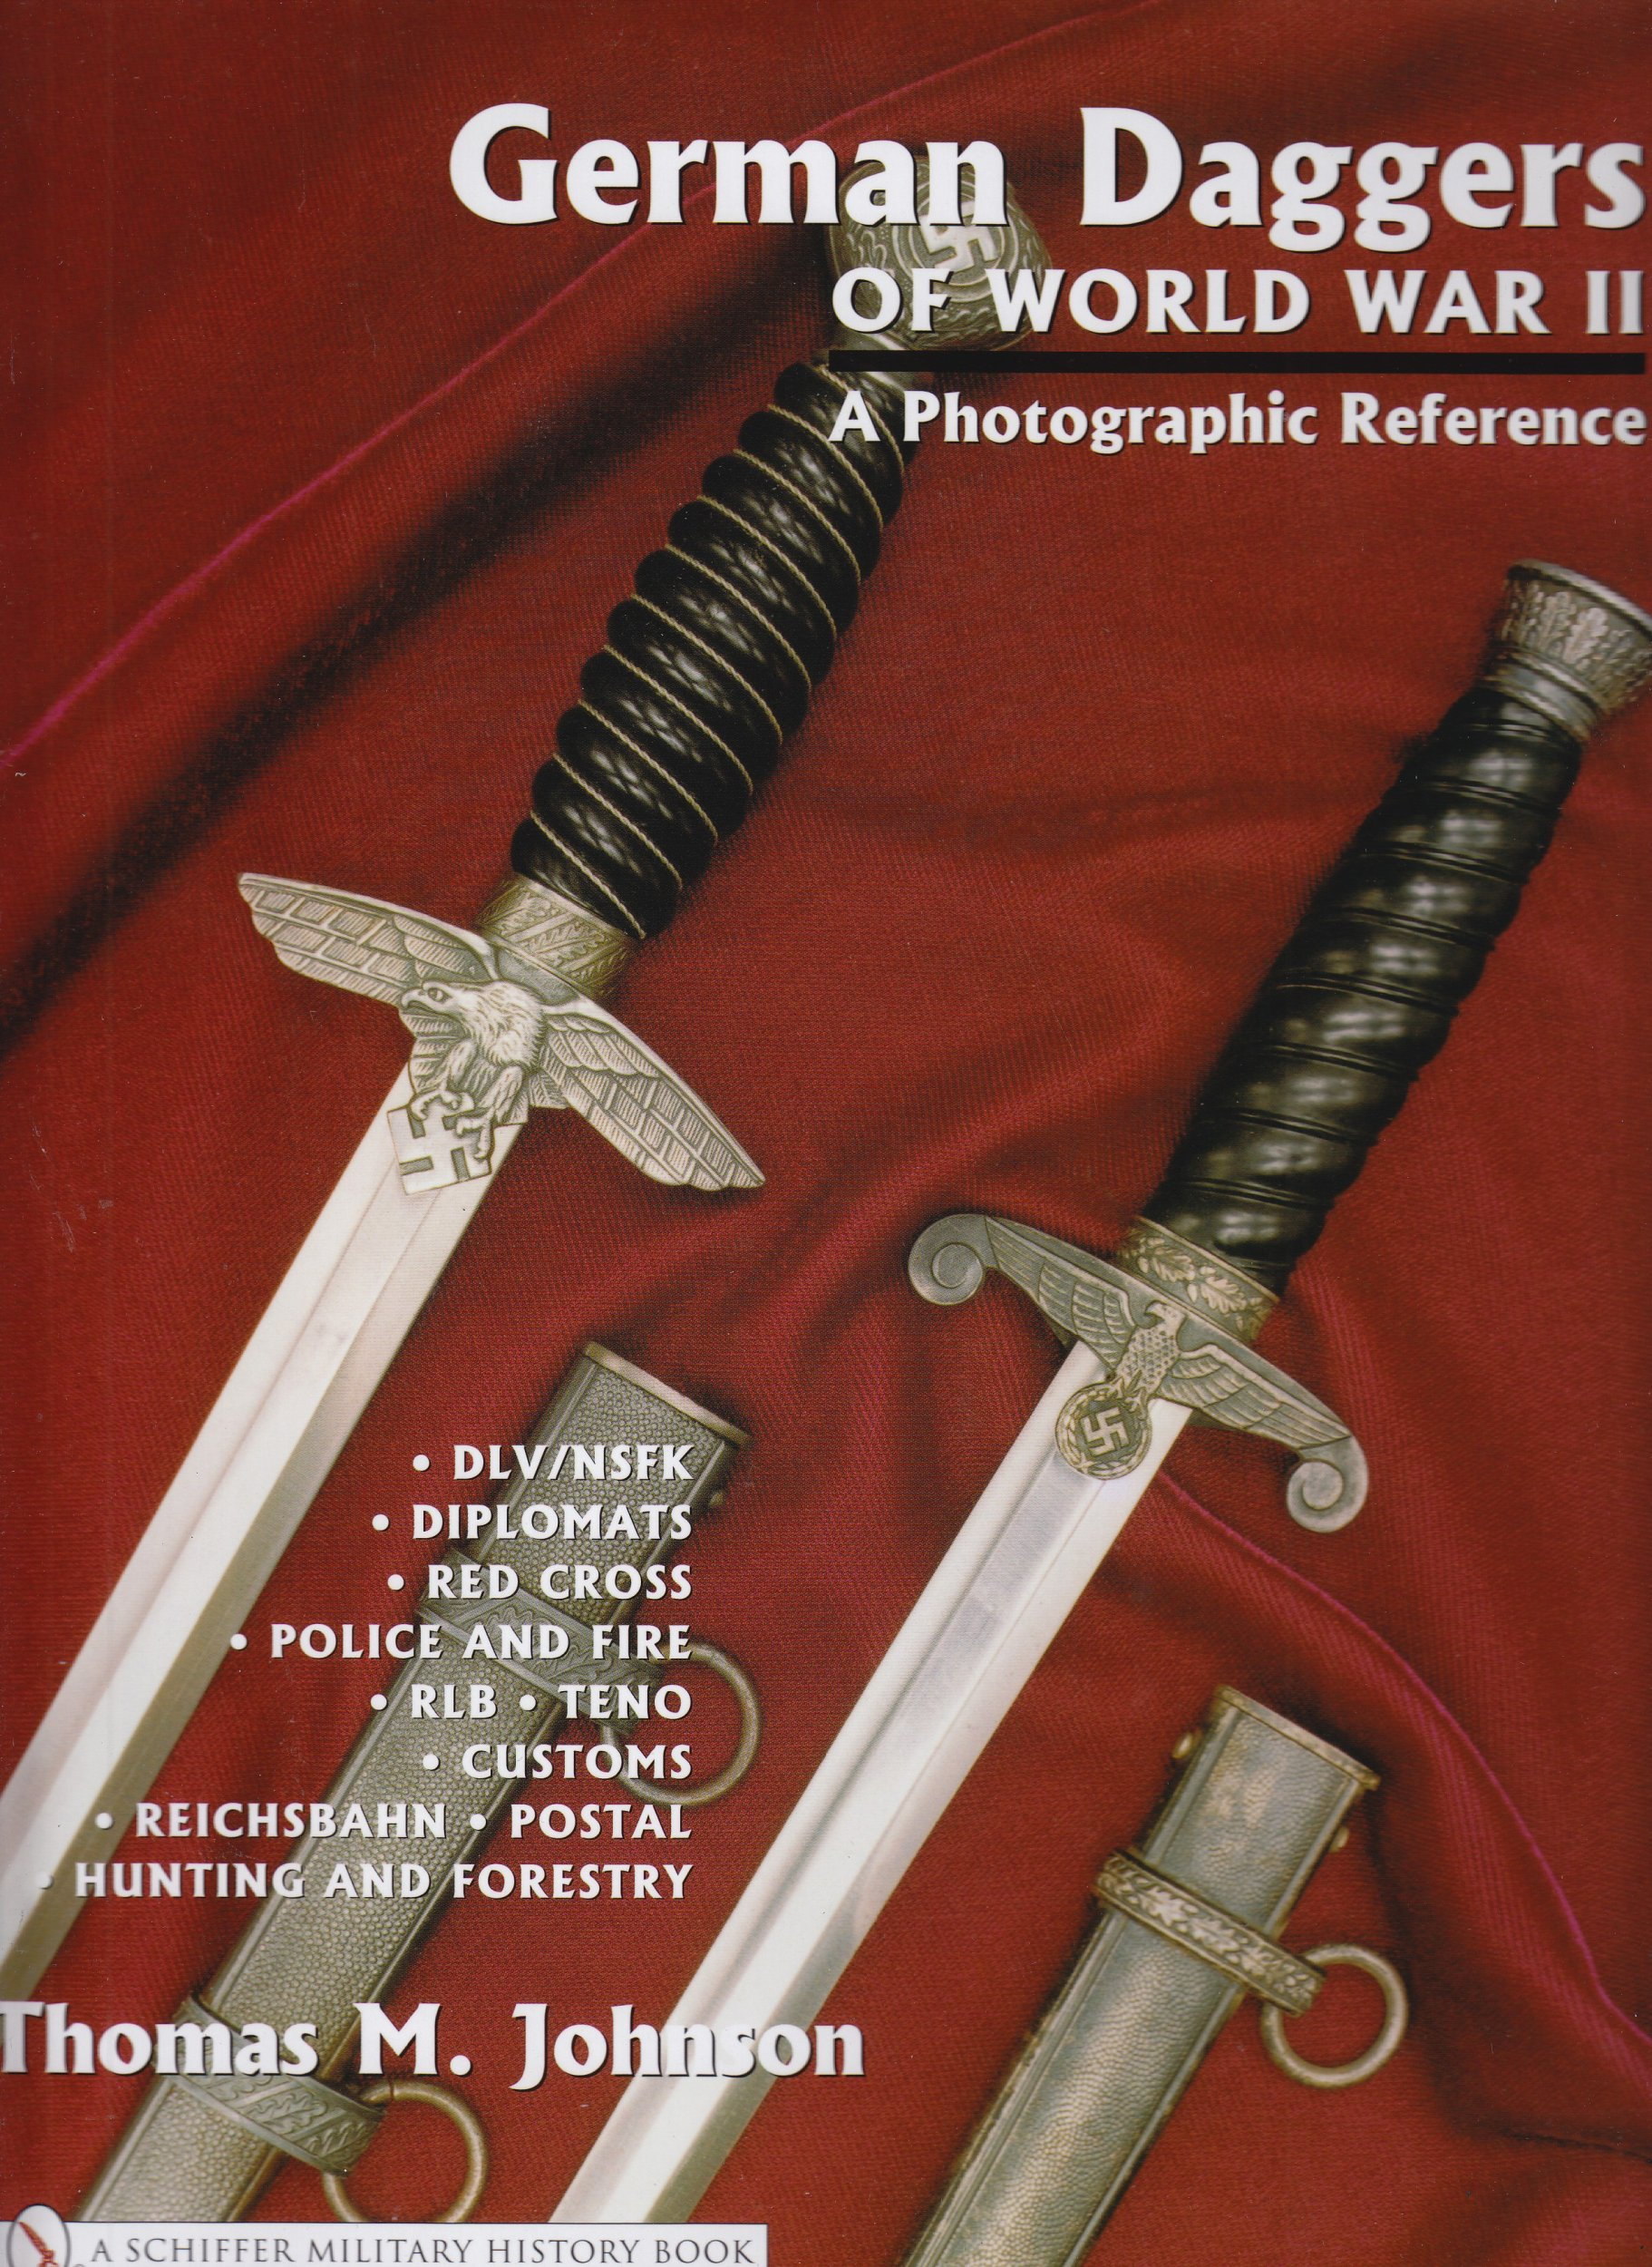 Download German Daggers Of World War II - A Photographic Reference: Dlv/nsfk - Diplomats - Red Cross  - Police And Fire - Rlb - Teno - Customs - Reichsbahn - Postal -  Hunting And Forestry - Etc. PDF